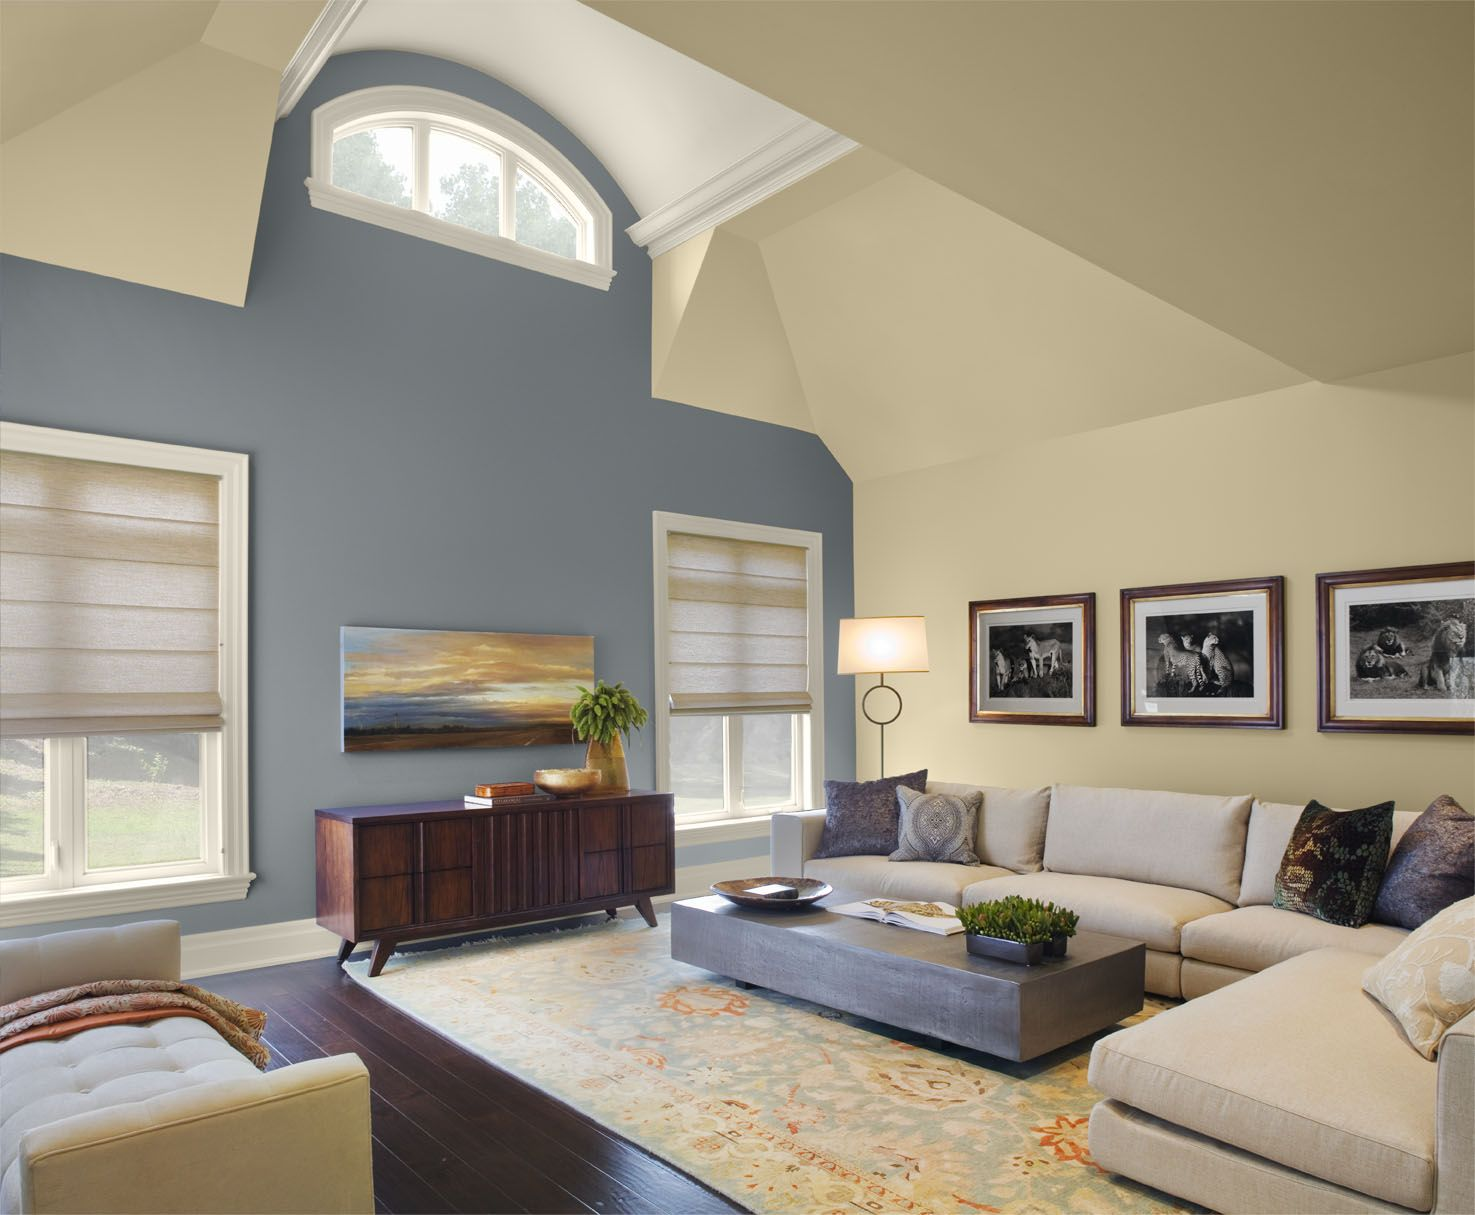 Living room paint ideas accent wall - Walls Ceiling Dunmore Cream Hc 29 Ceiling Detail Trim Living Room Paint Colorscalming